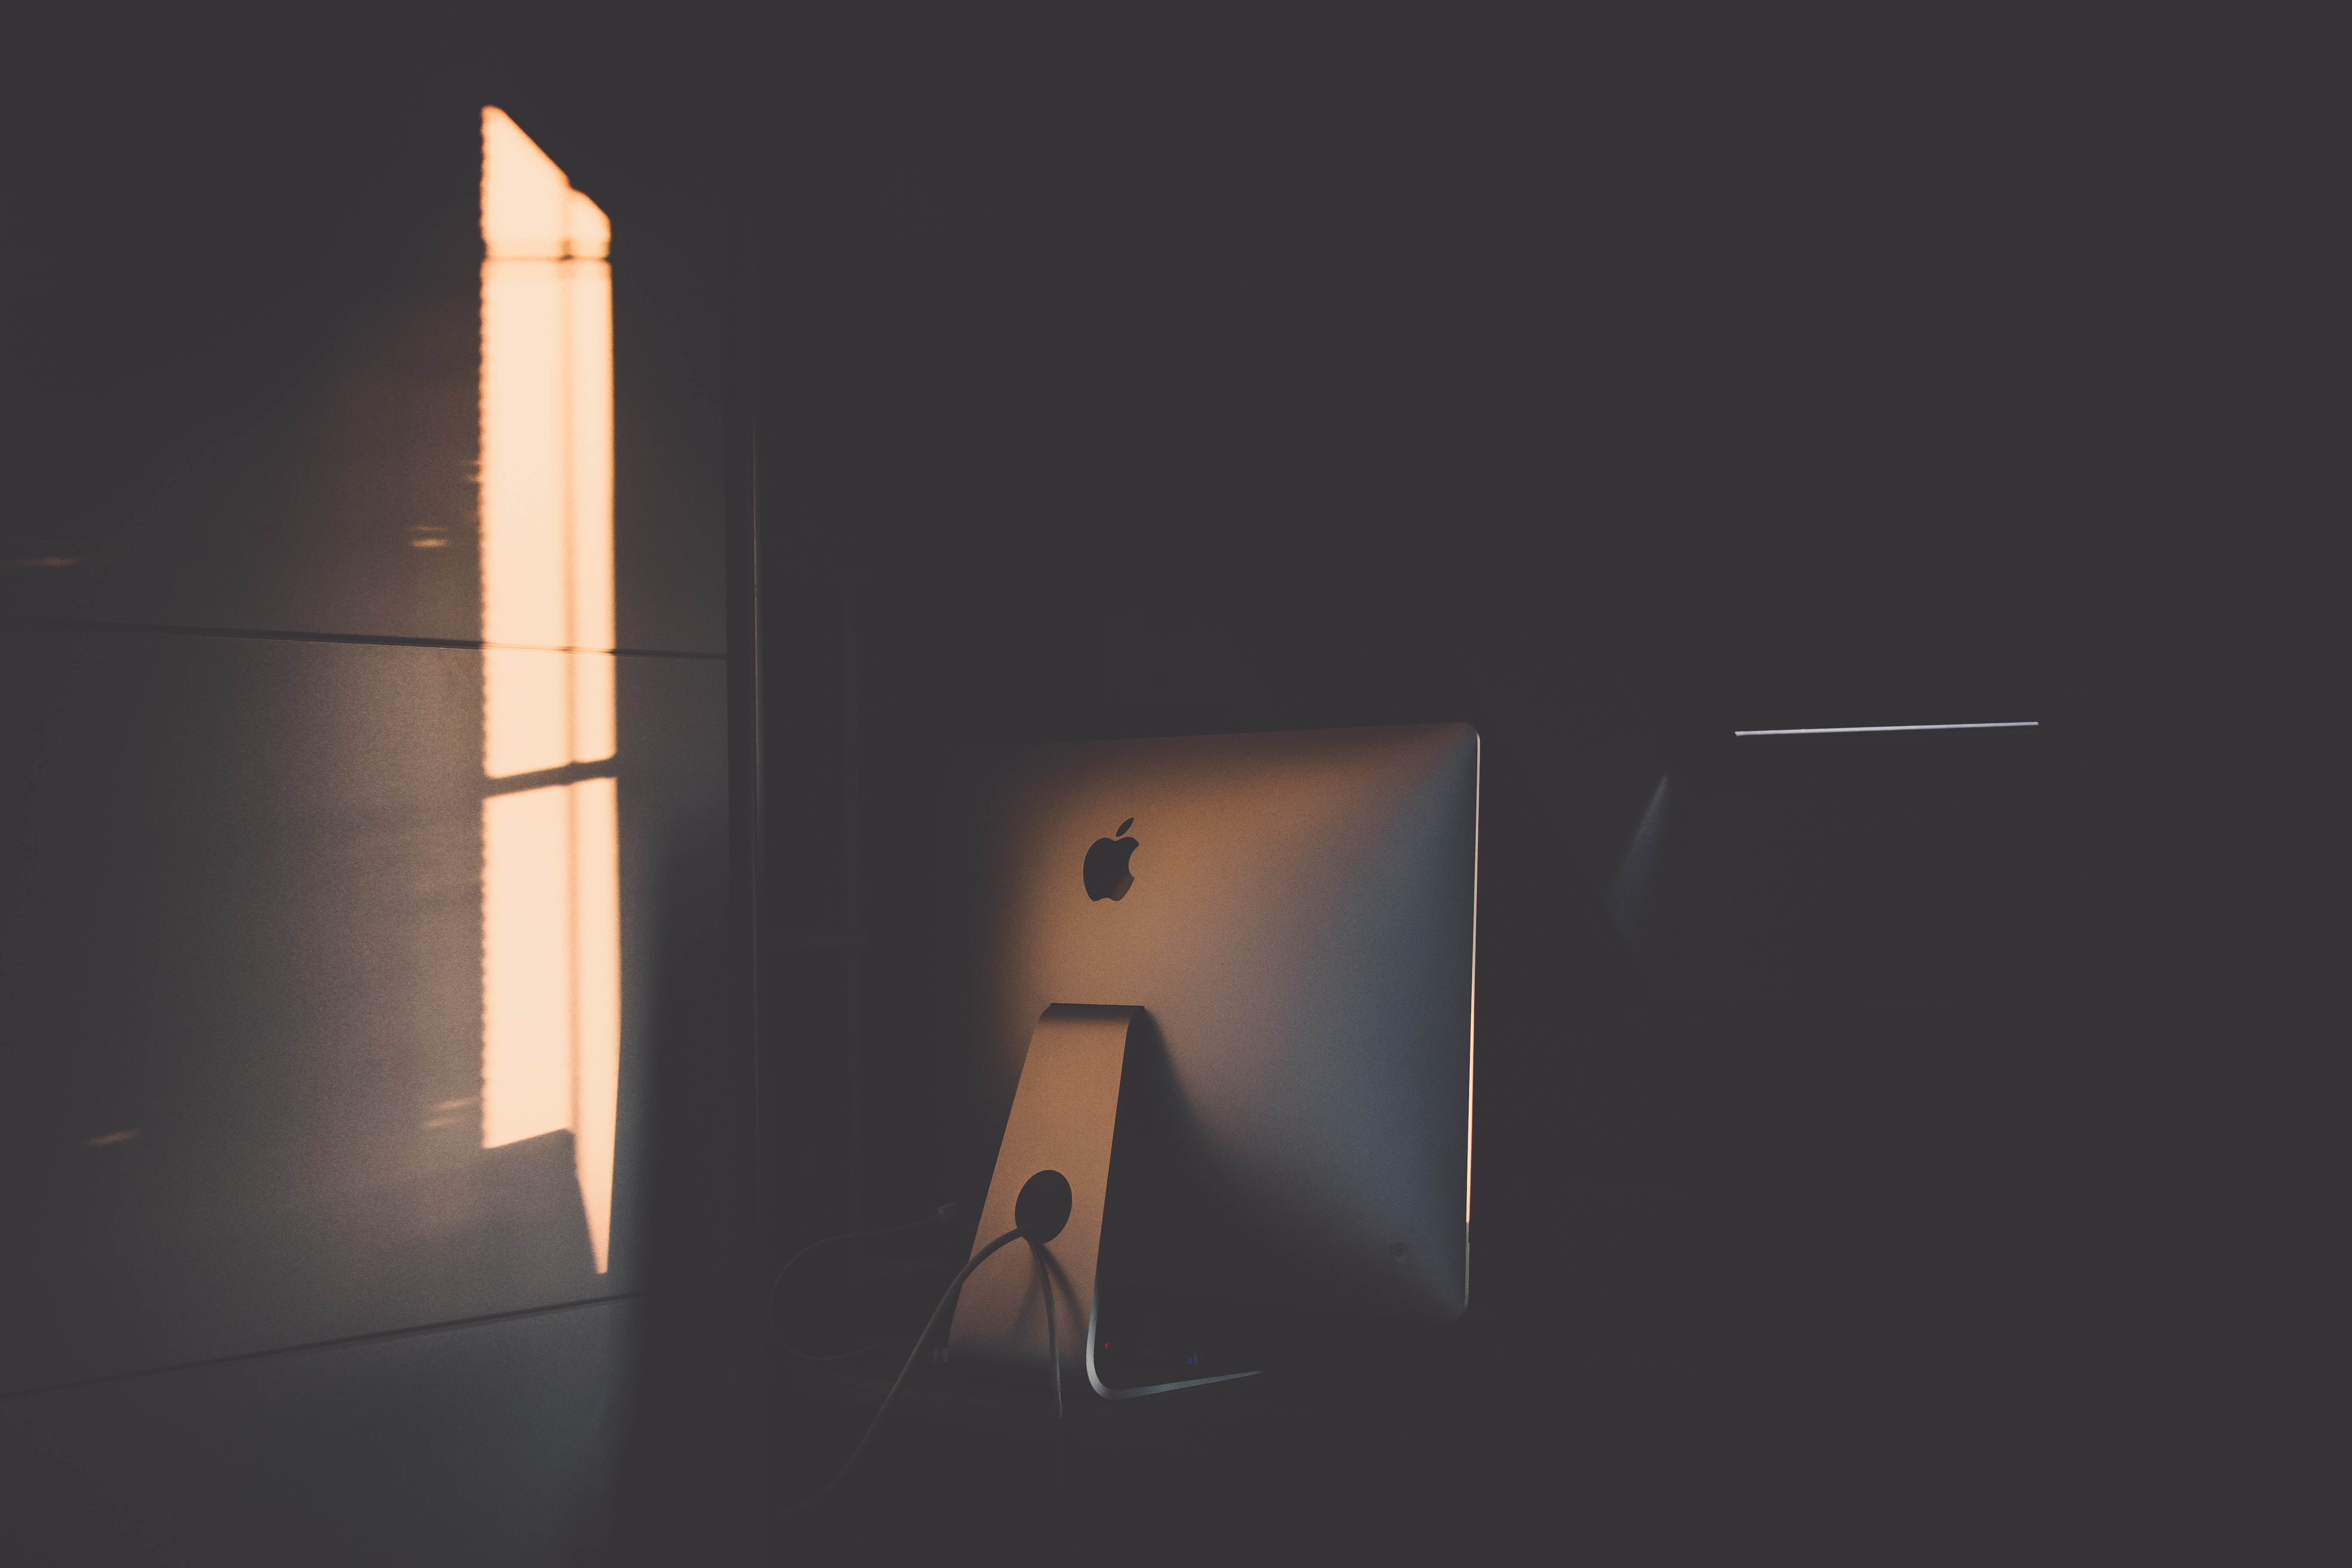 Room with shadow casting over an iMac computer on a desk in Sopron